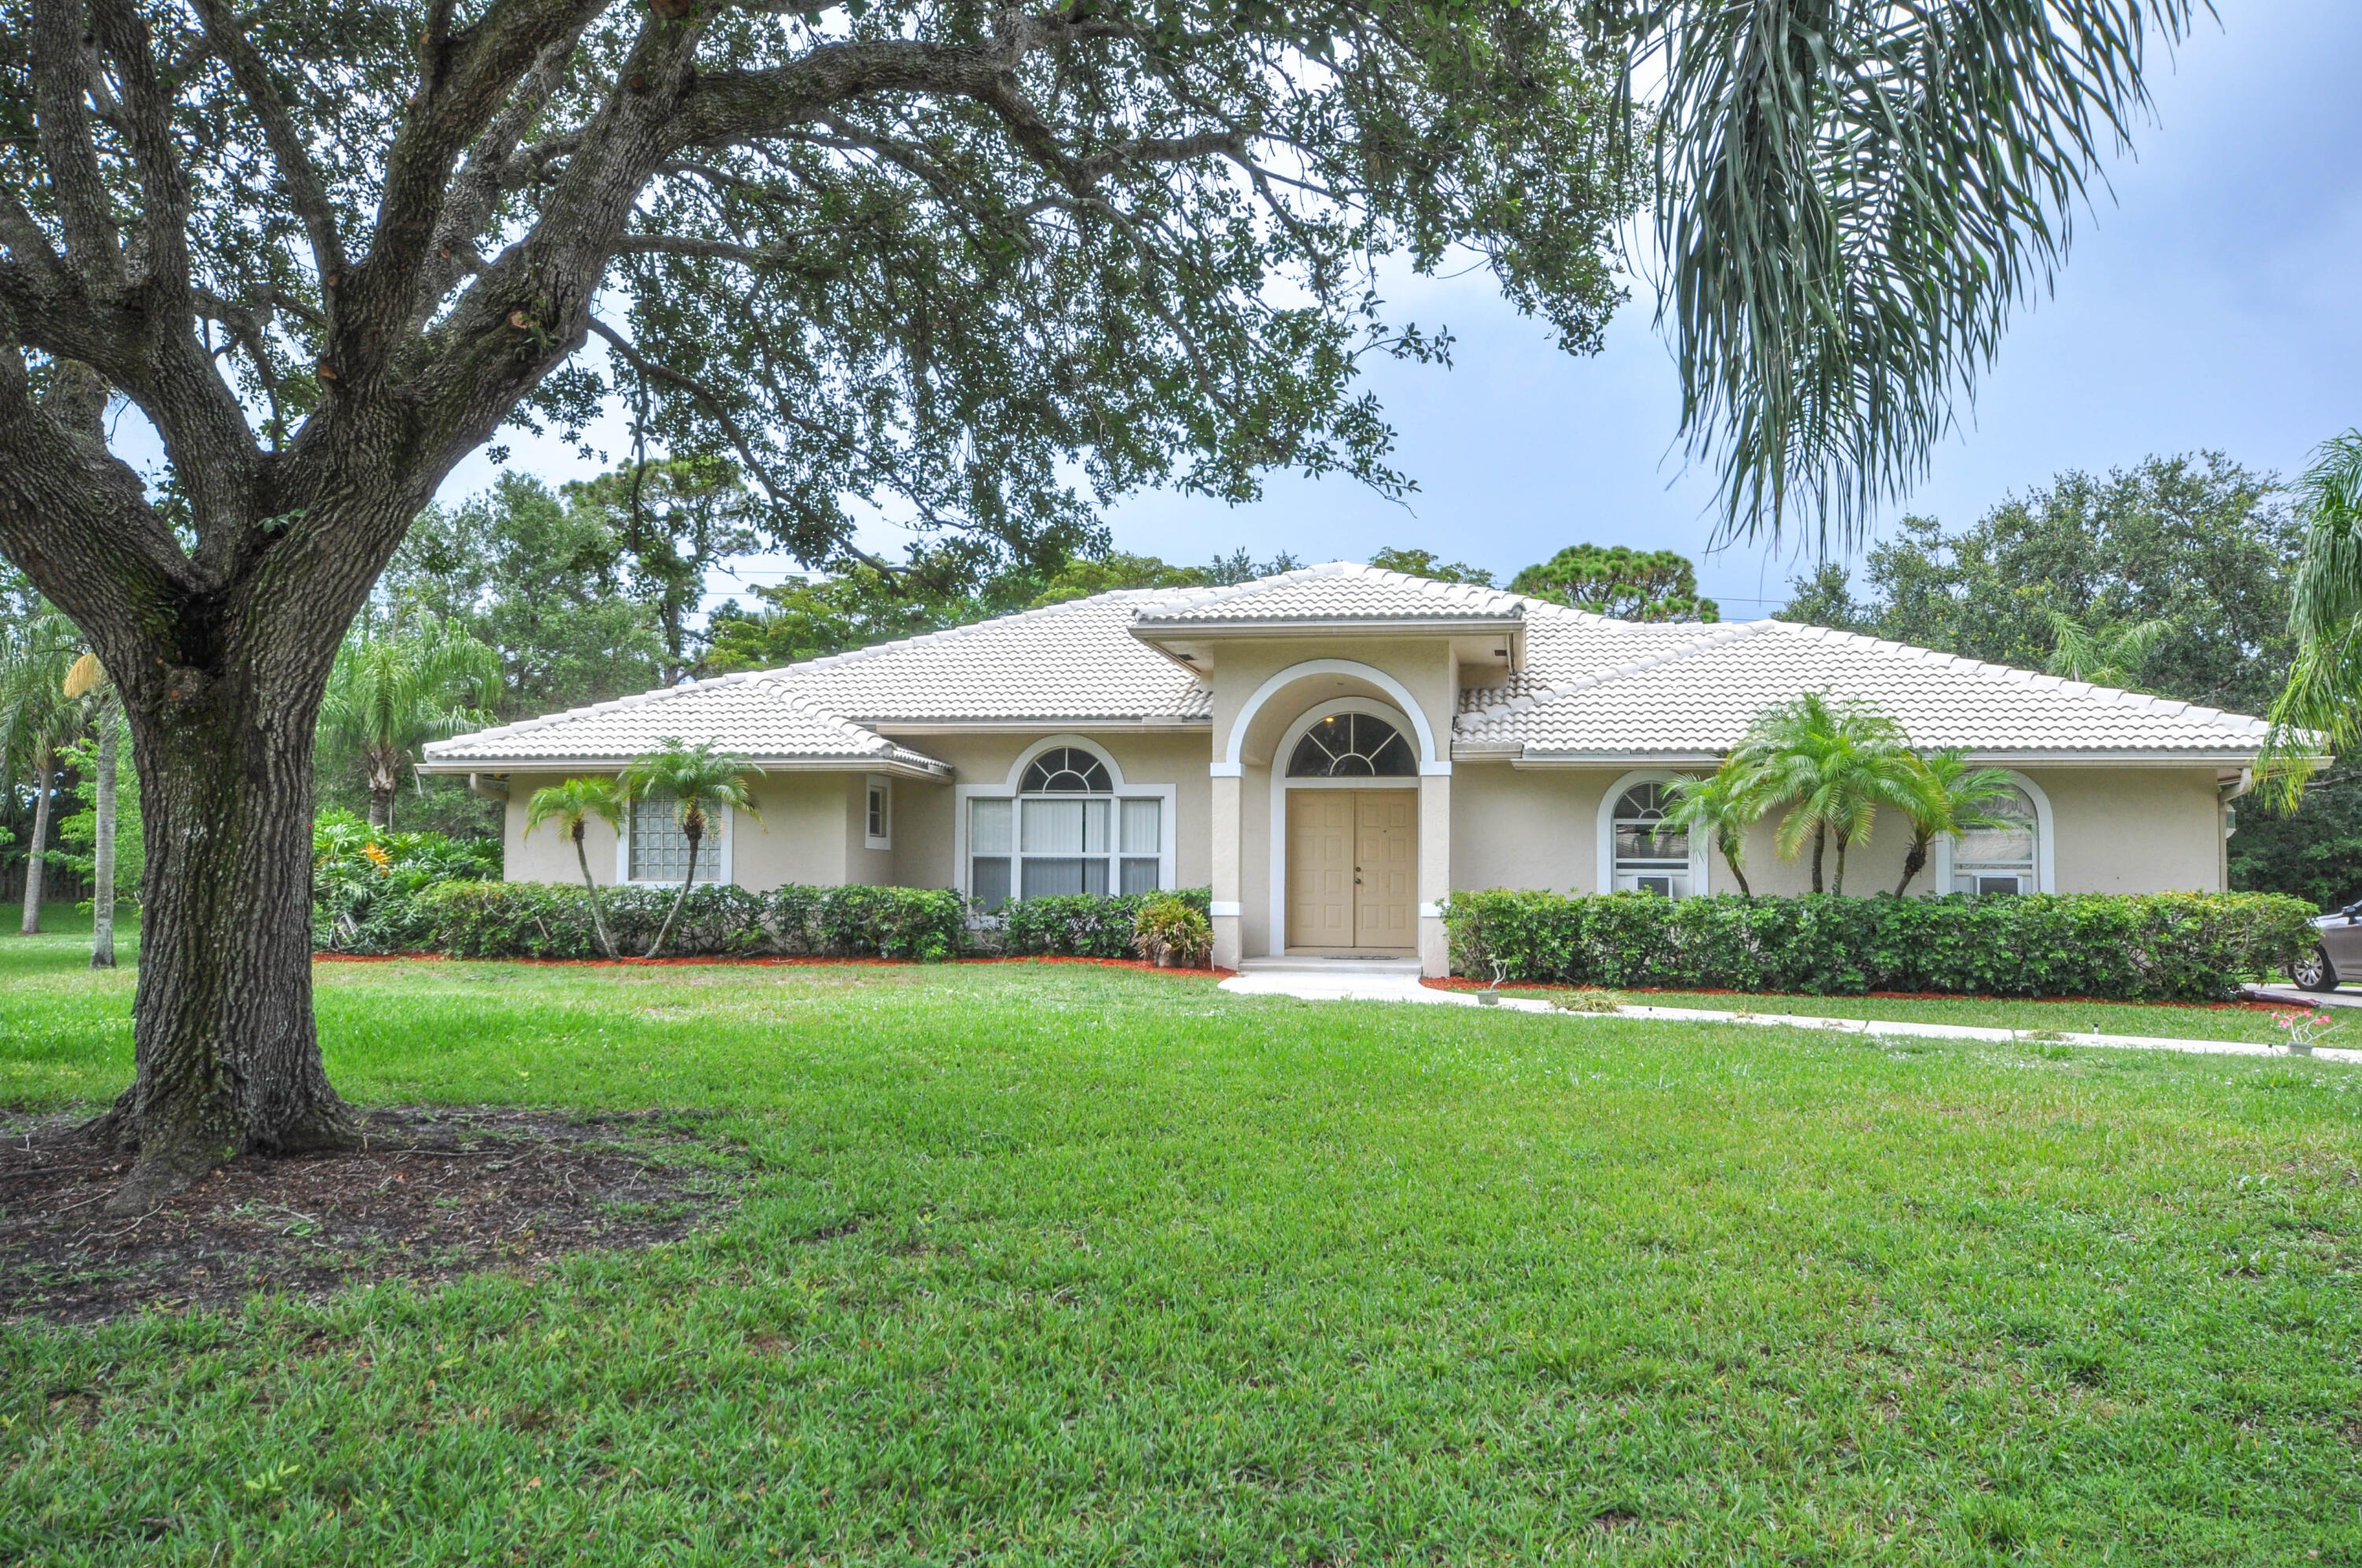 9560  Spanish Moss Road  For Sale 10724207, FL